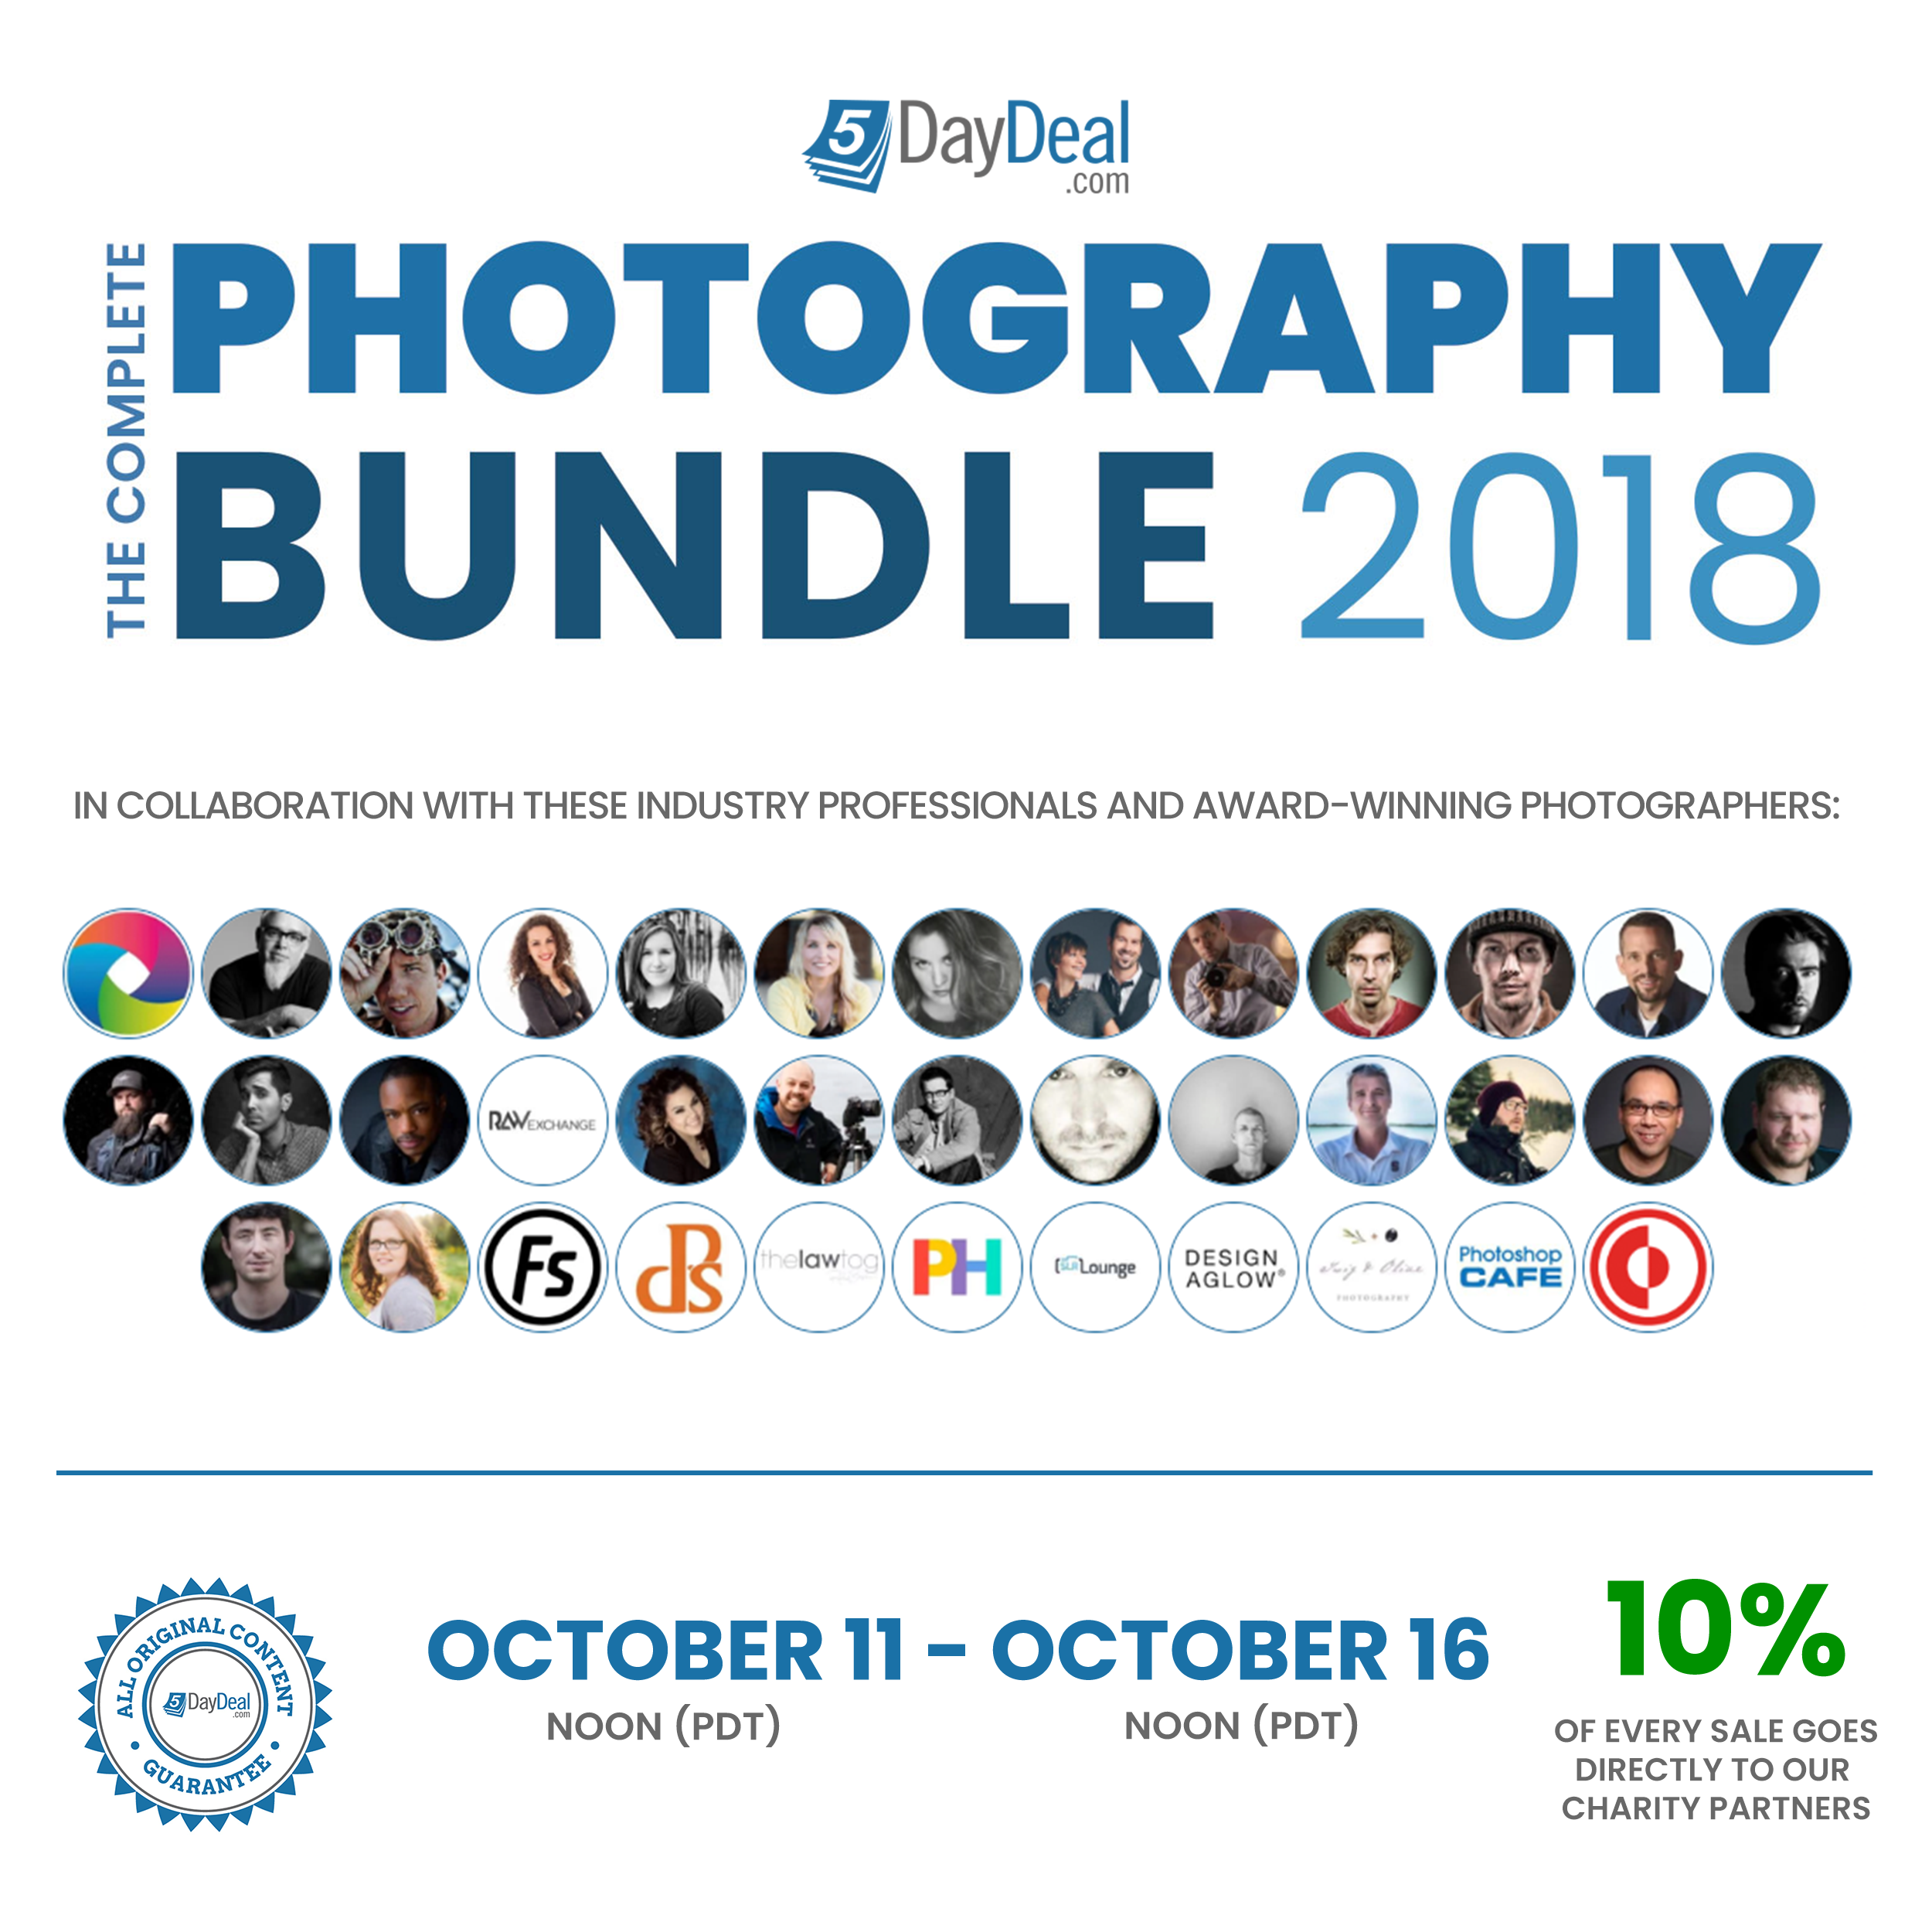 Cheap Photo: Save 96% When You Buy the Complete Photography Bundle 2018 For Just $89!